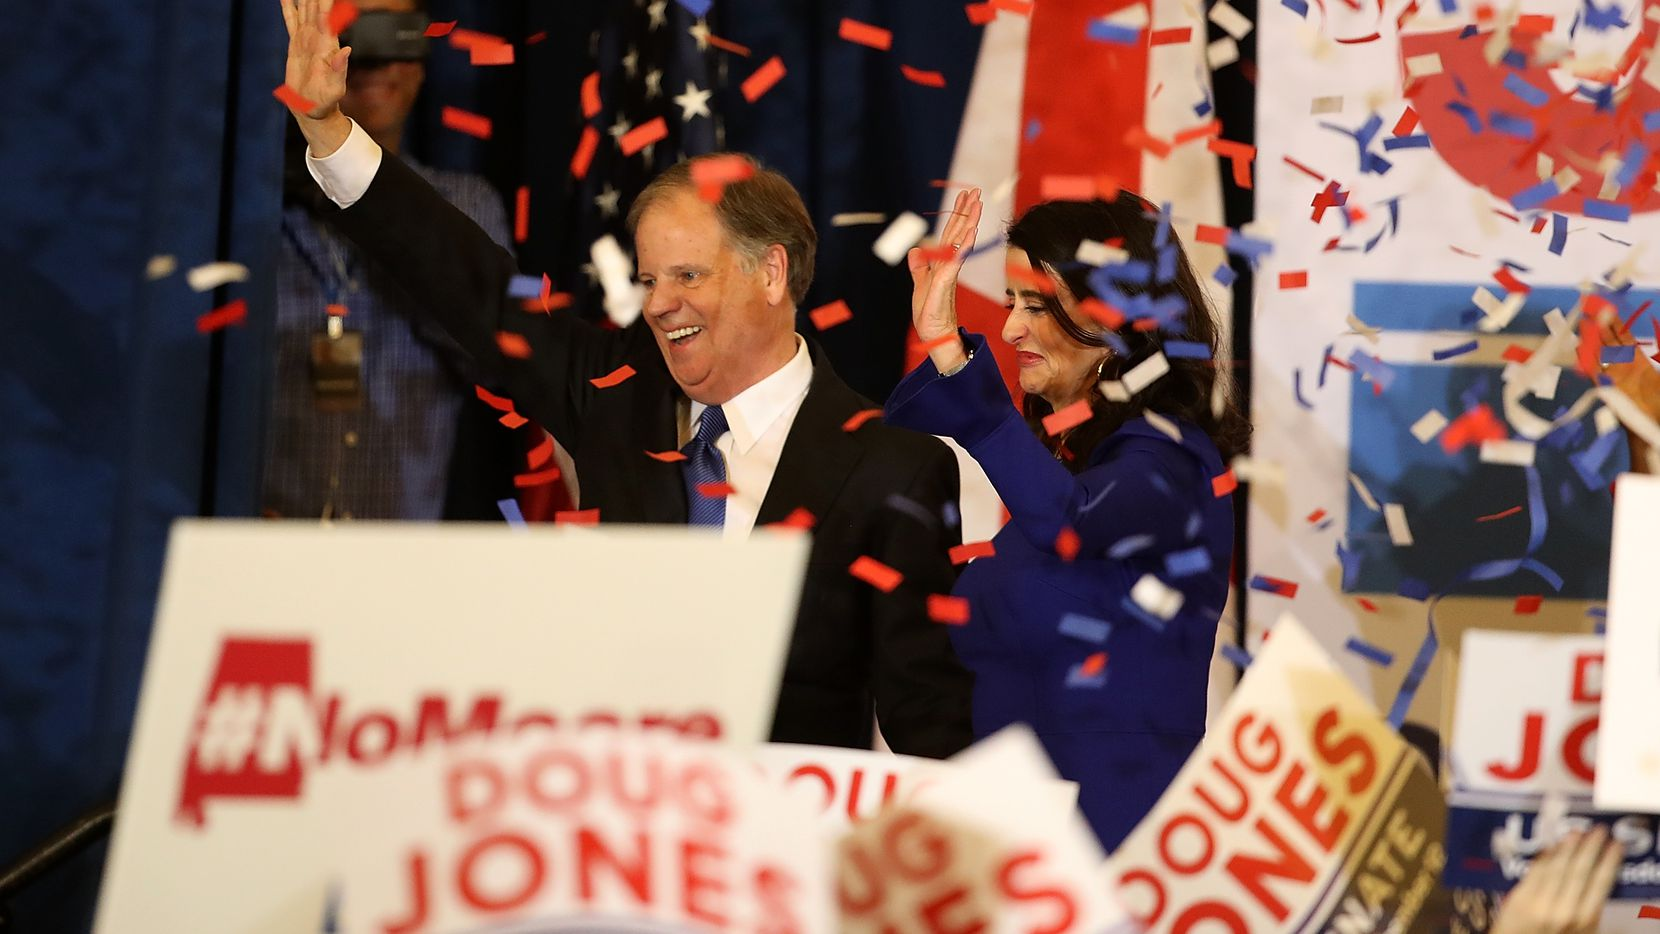 Doug Jones, with his wife, Louise, celebrated his victory in Birmingham, Ala., Tuesday night.